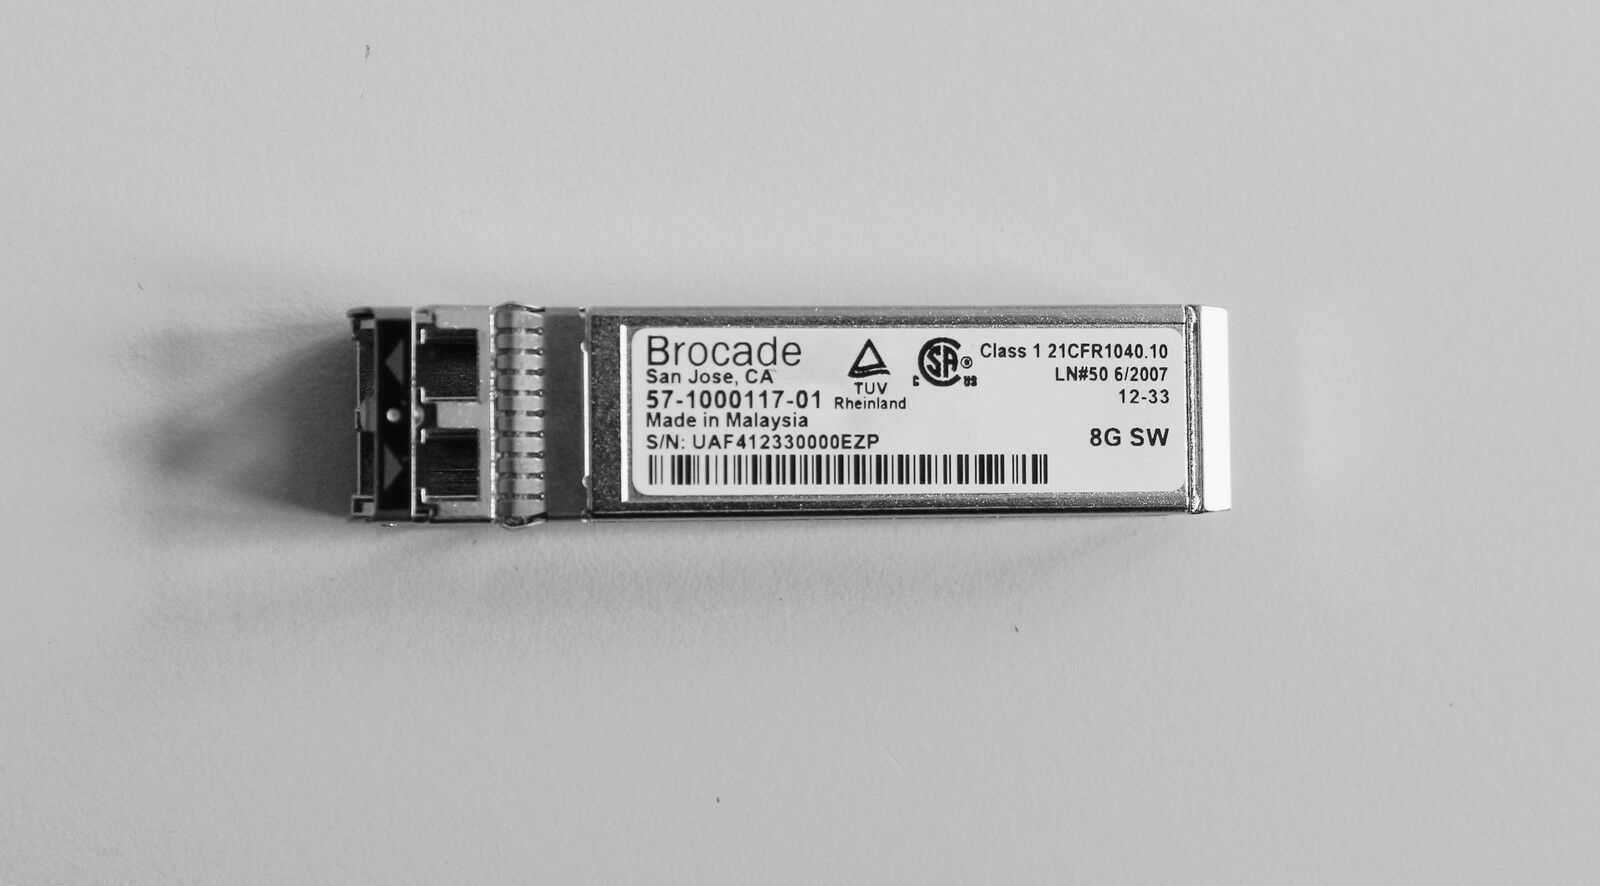 Sfp Brocade 57 1000117 01 8gb Up To 10gb Modulo Fibra Ottica Ebay Rescontentglobalinflowinflowcomponenttechnicalissues